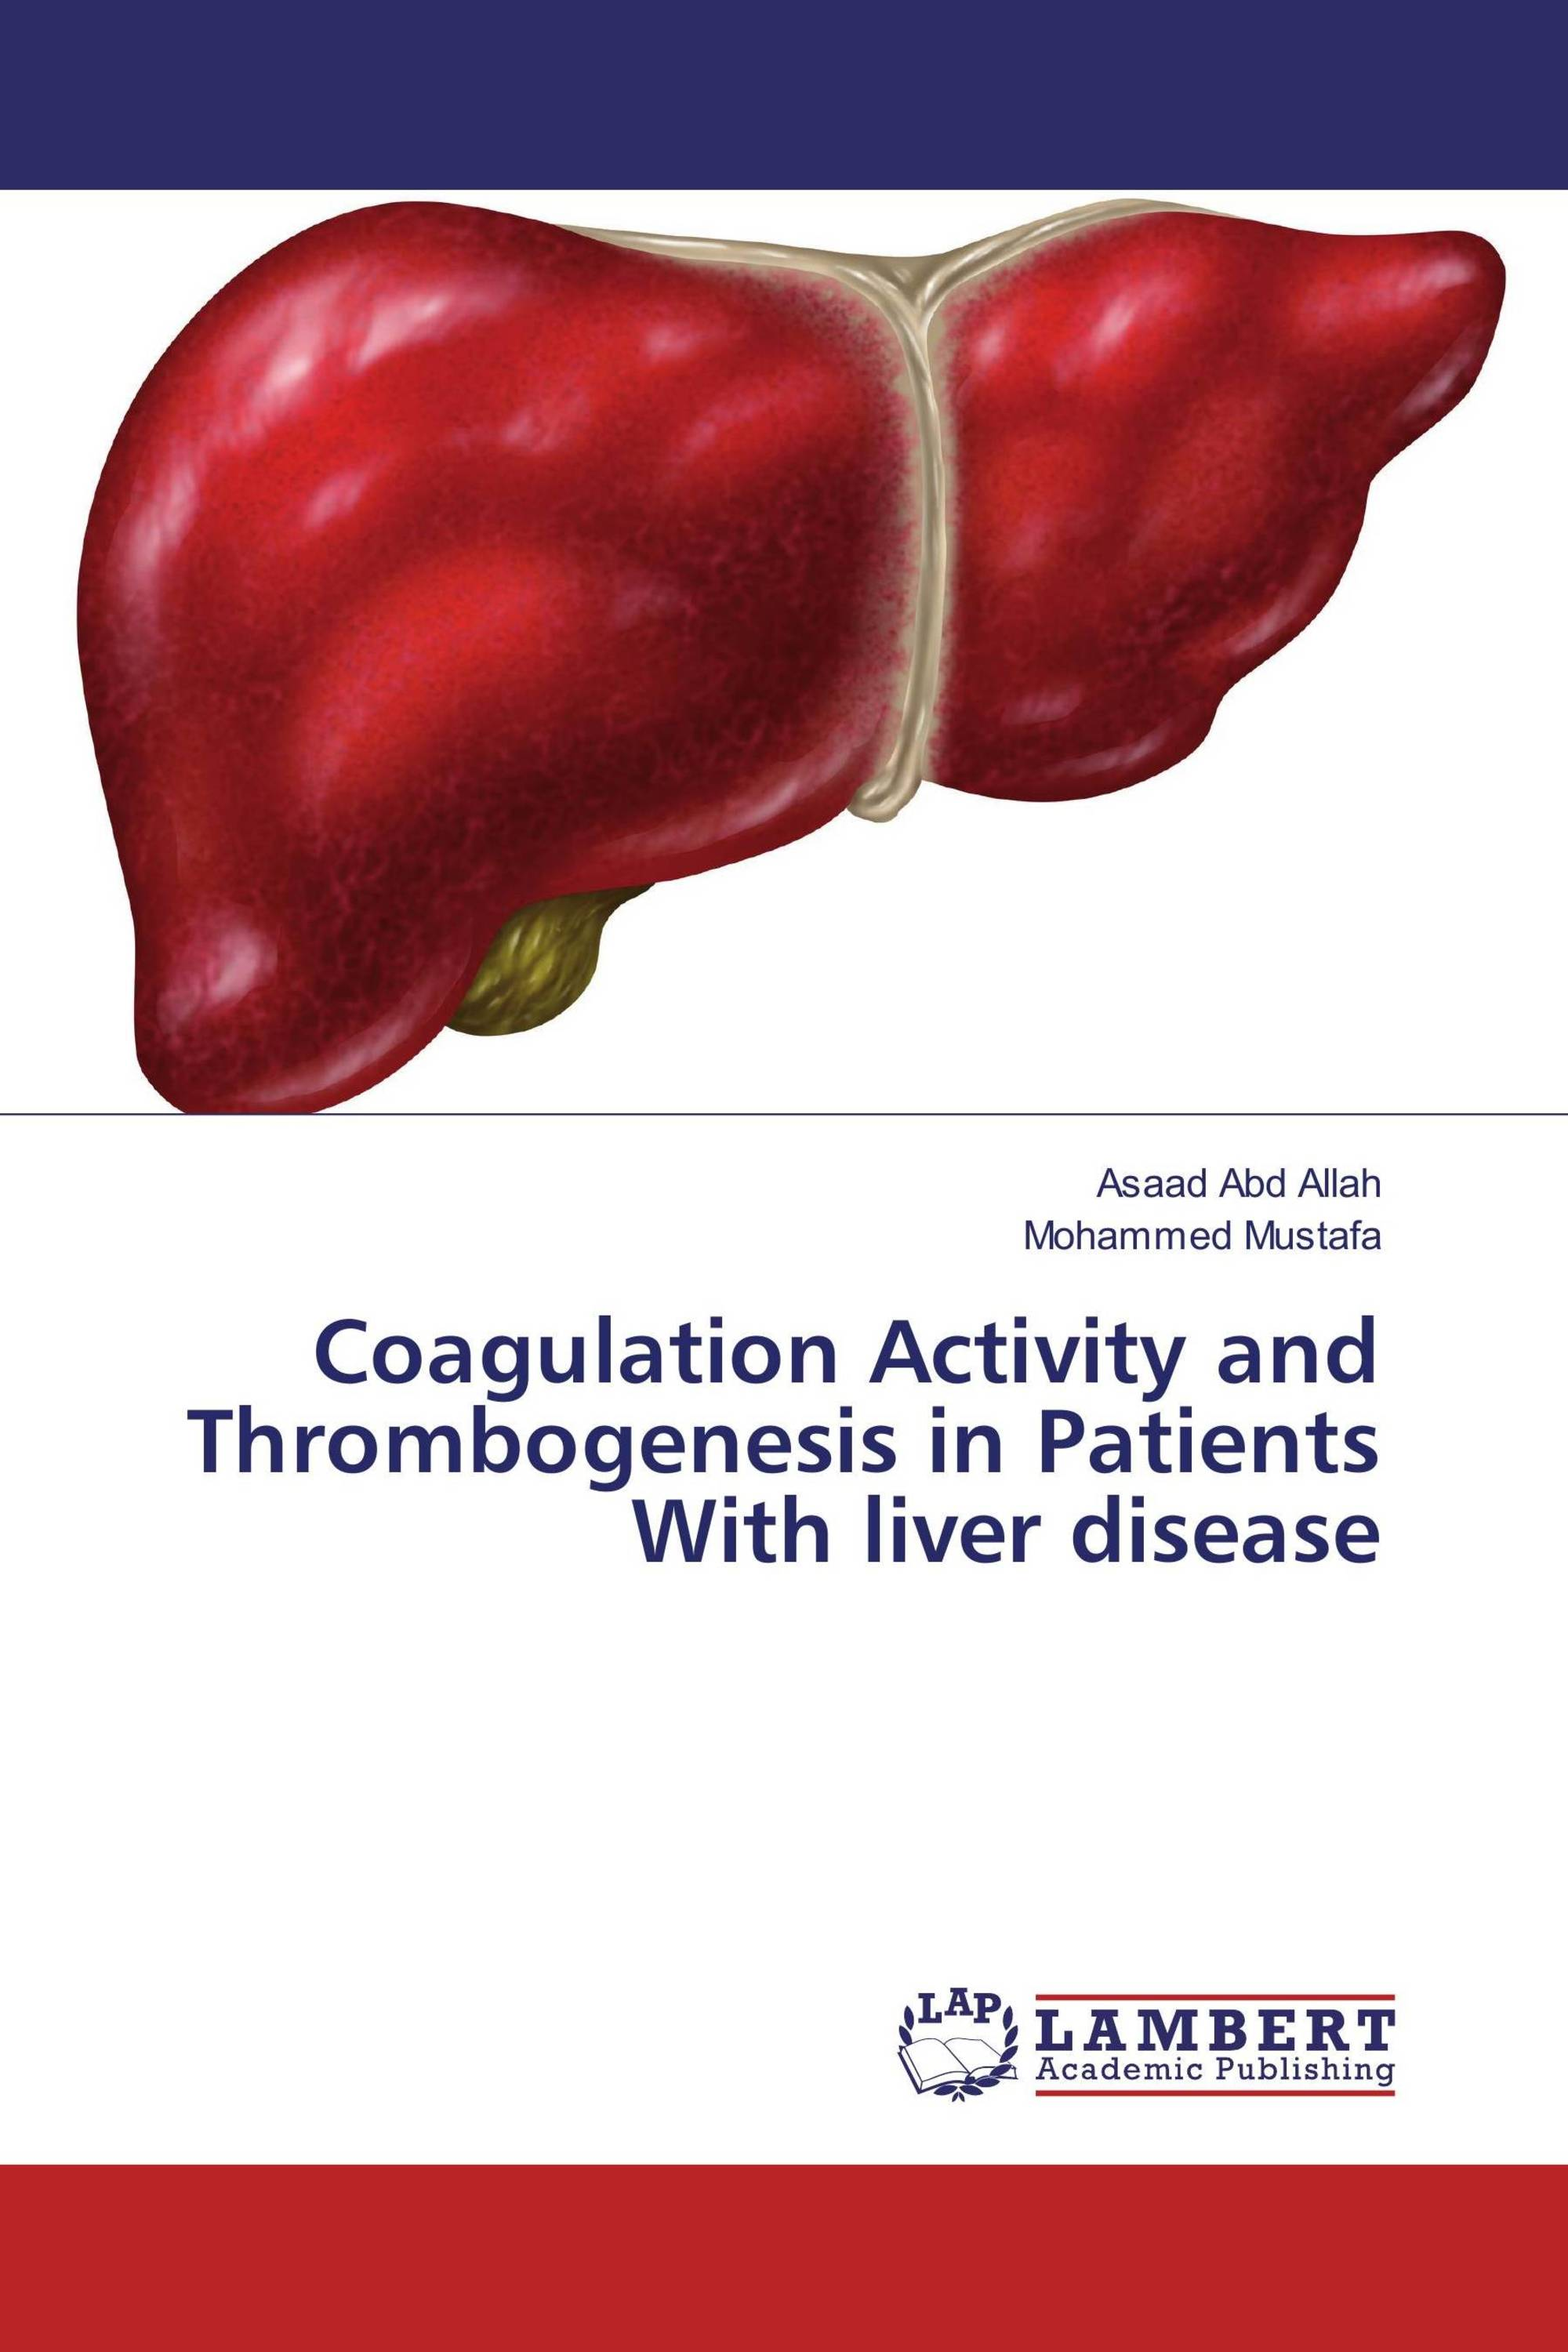 thesis on alcoholic liver disease A thesis entitled studies on the toxicity of mixtures of haloacetates  liver  diseases such as alcoholic steatohepatitis and cirrhosis (penny,.